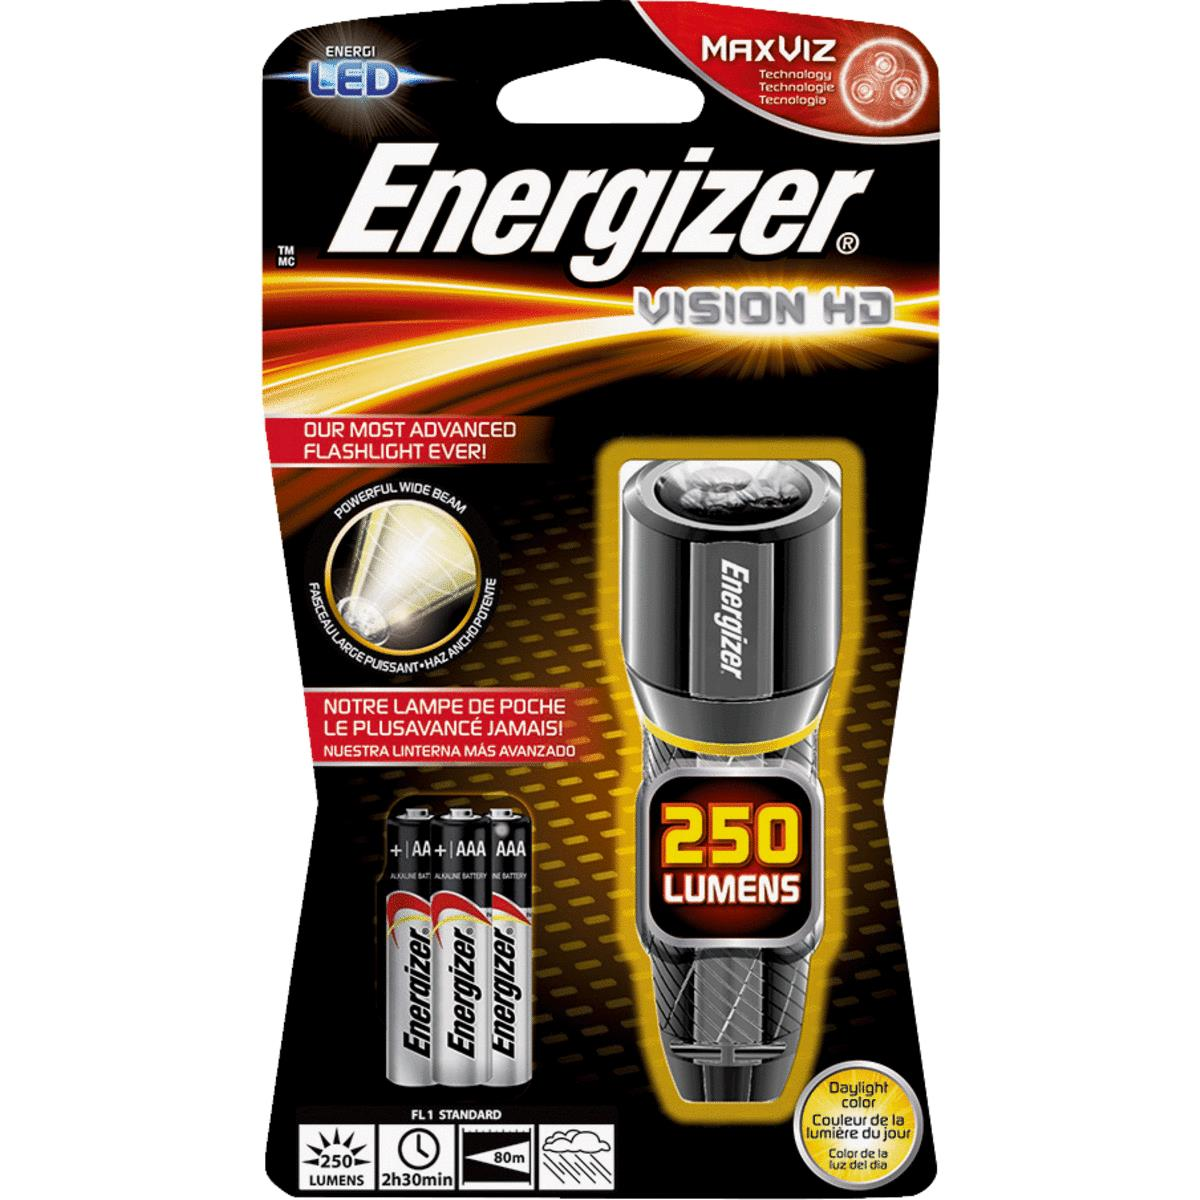 Energizer 407 Flashlight Bulb 4D//6V set of 4 bulbs